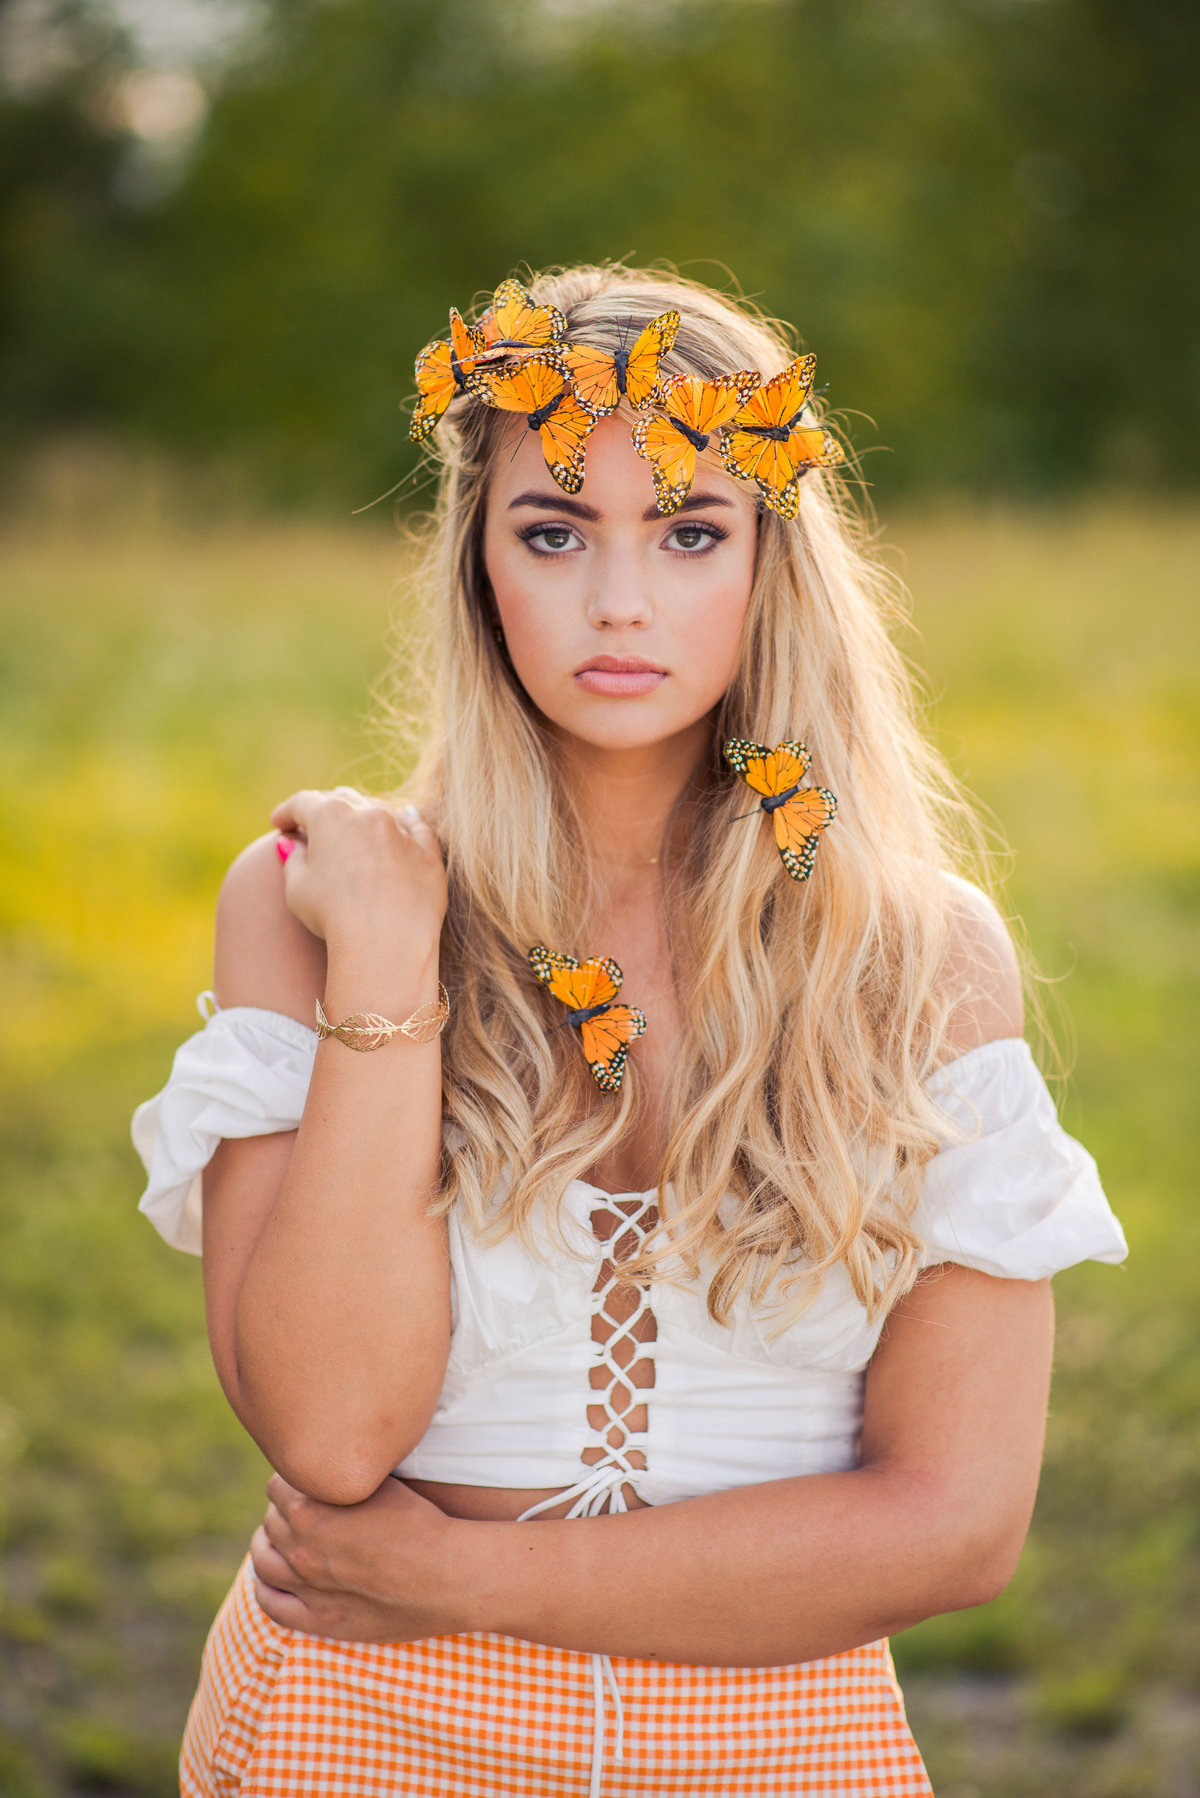 Senior Session Girl in Field with Butterflies